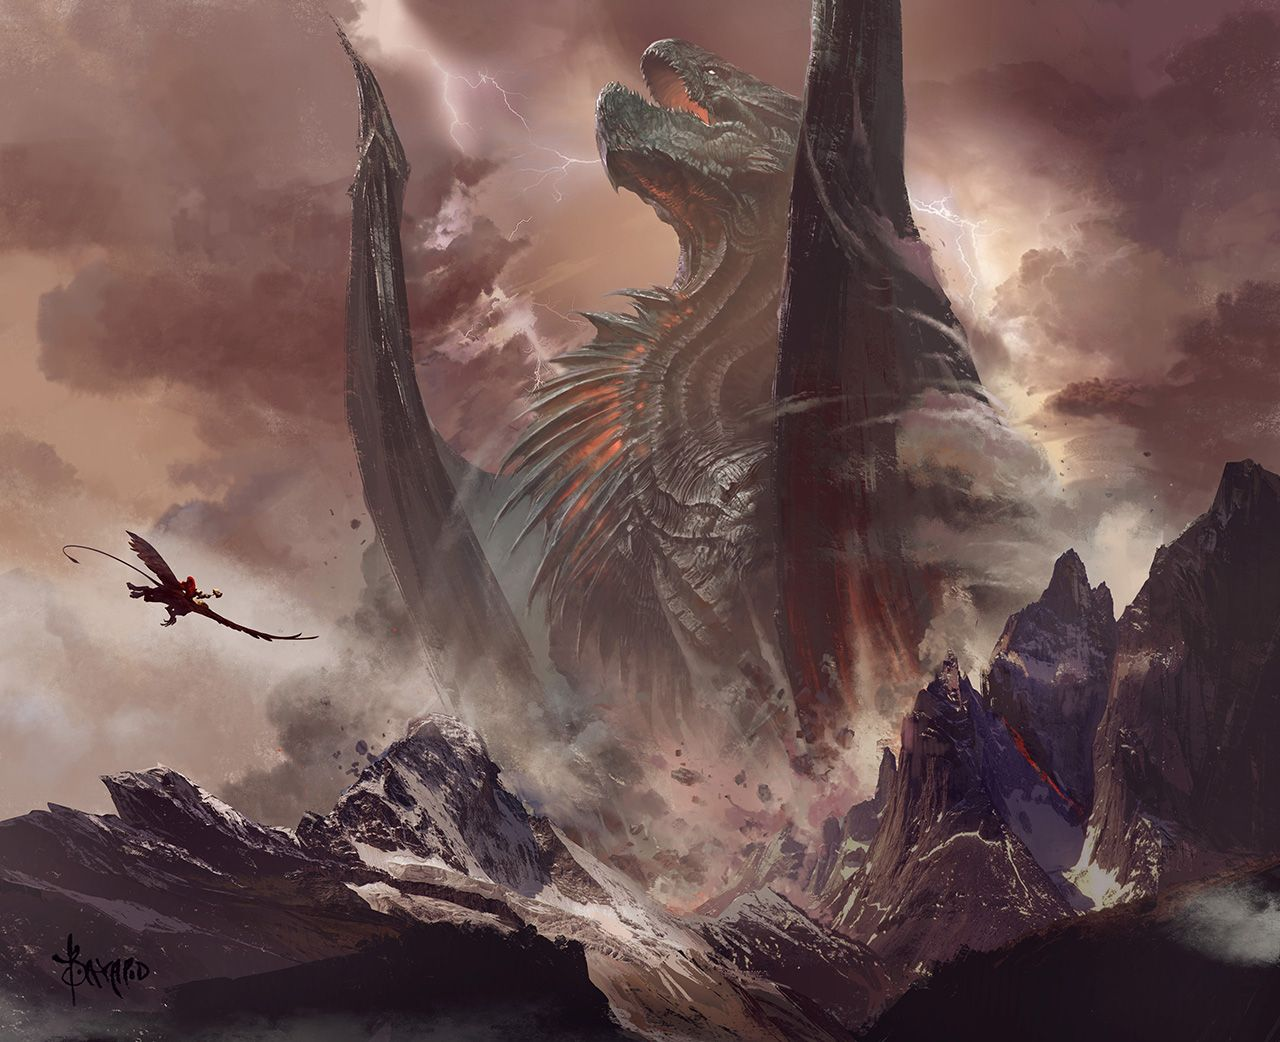 giant giant fire dragon vs ice dragon - photo #20